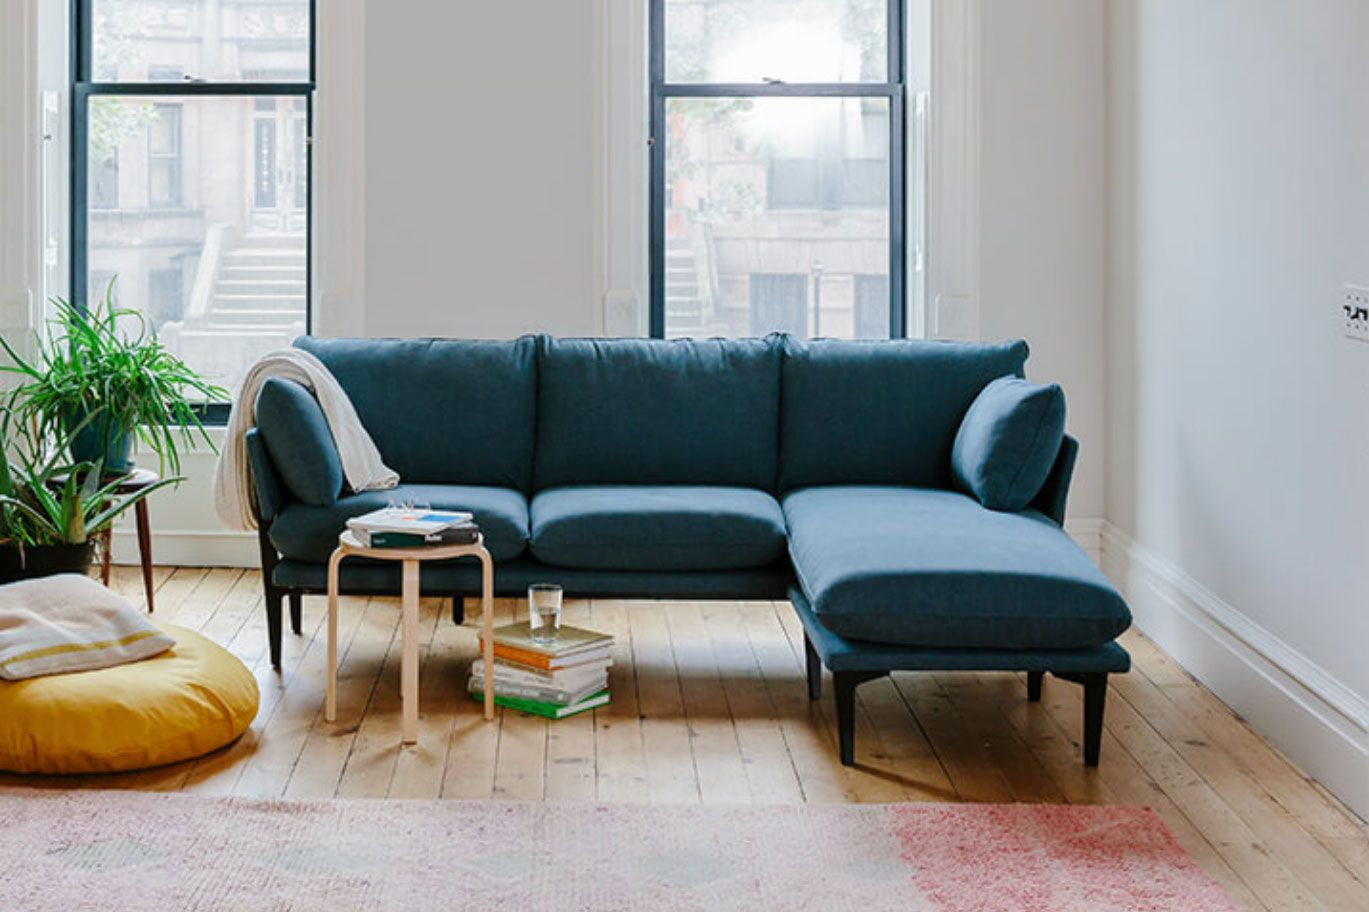 Wondrous 10 Best Flat Pack Sofas Campaign Joybird Burrow 2019 Download Free Architecture Designs Embacsunscenecom